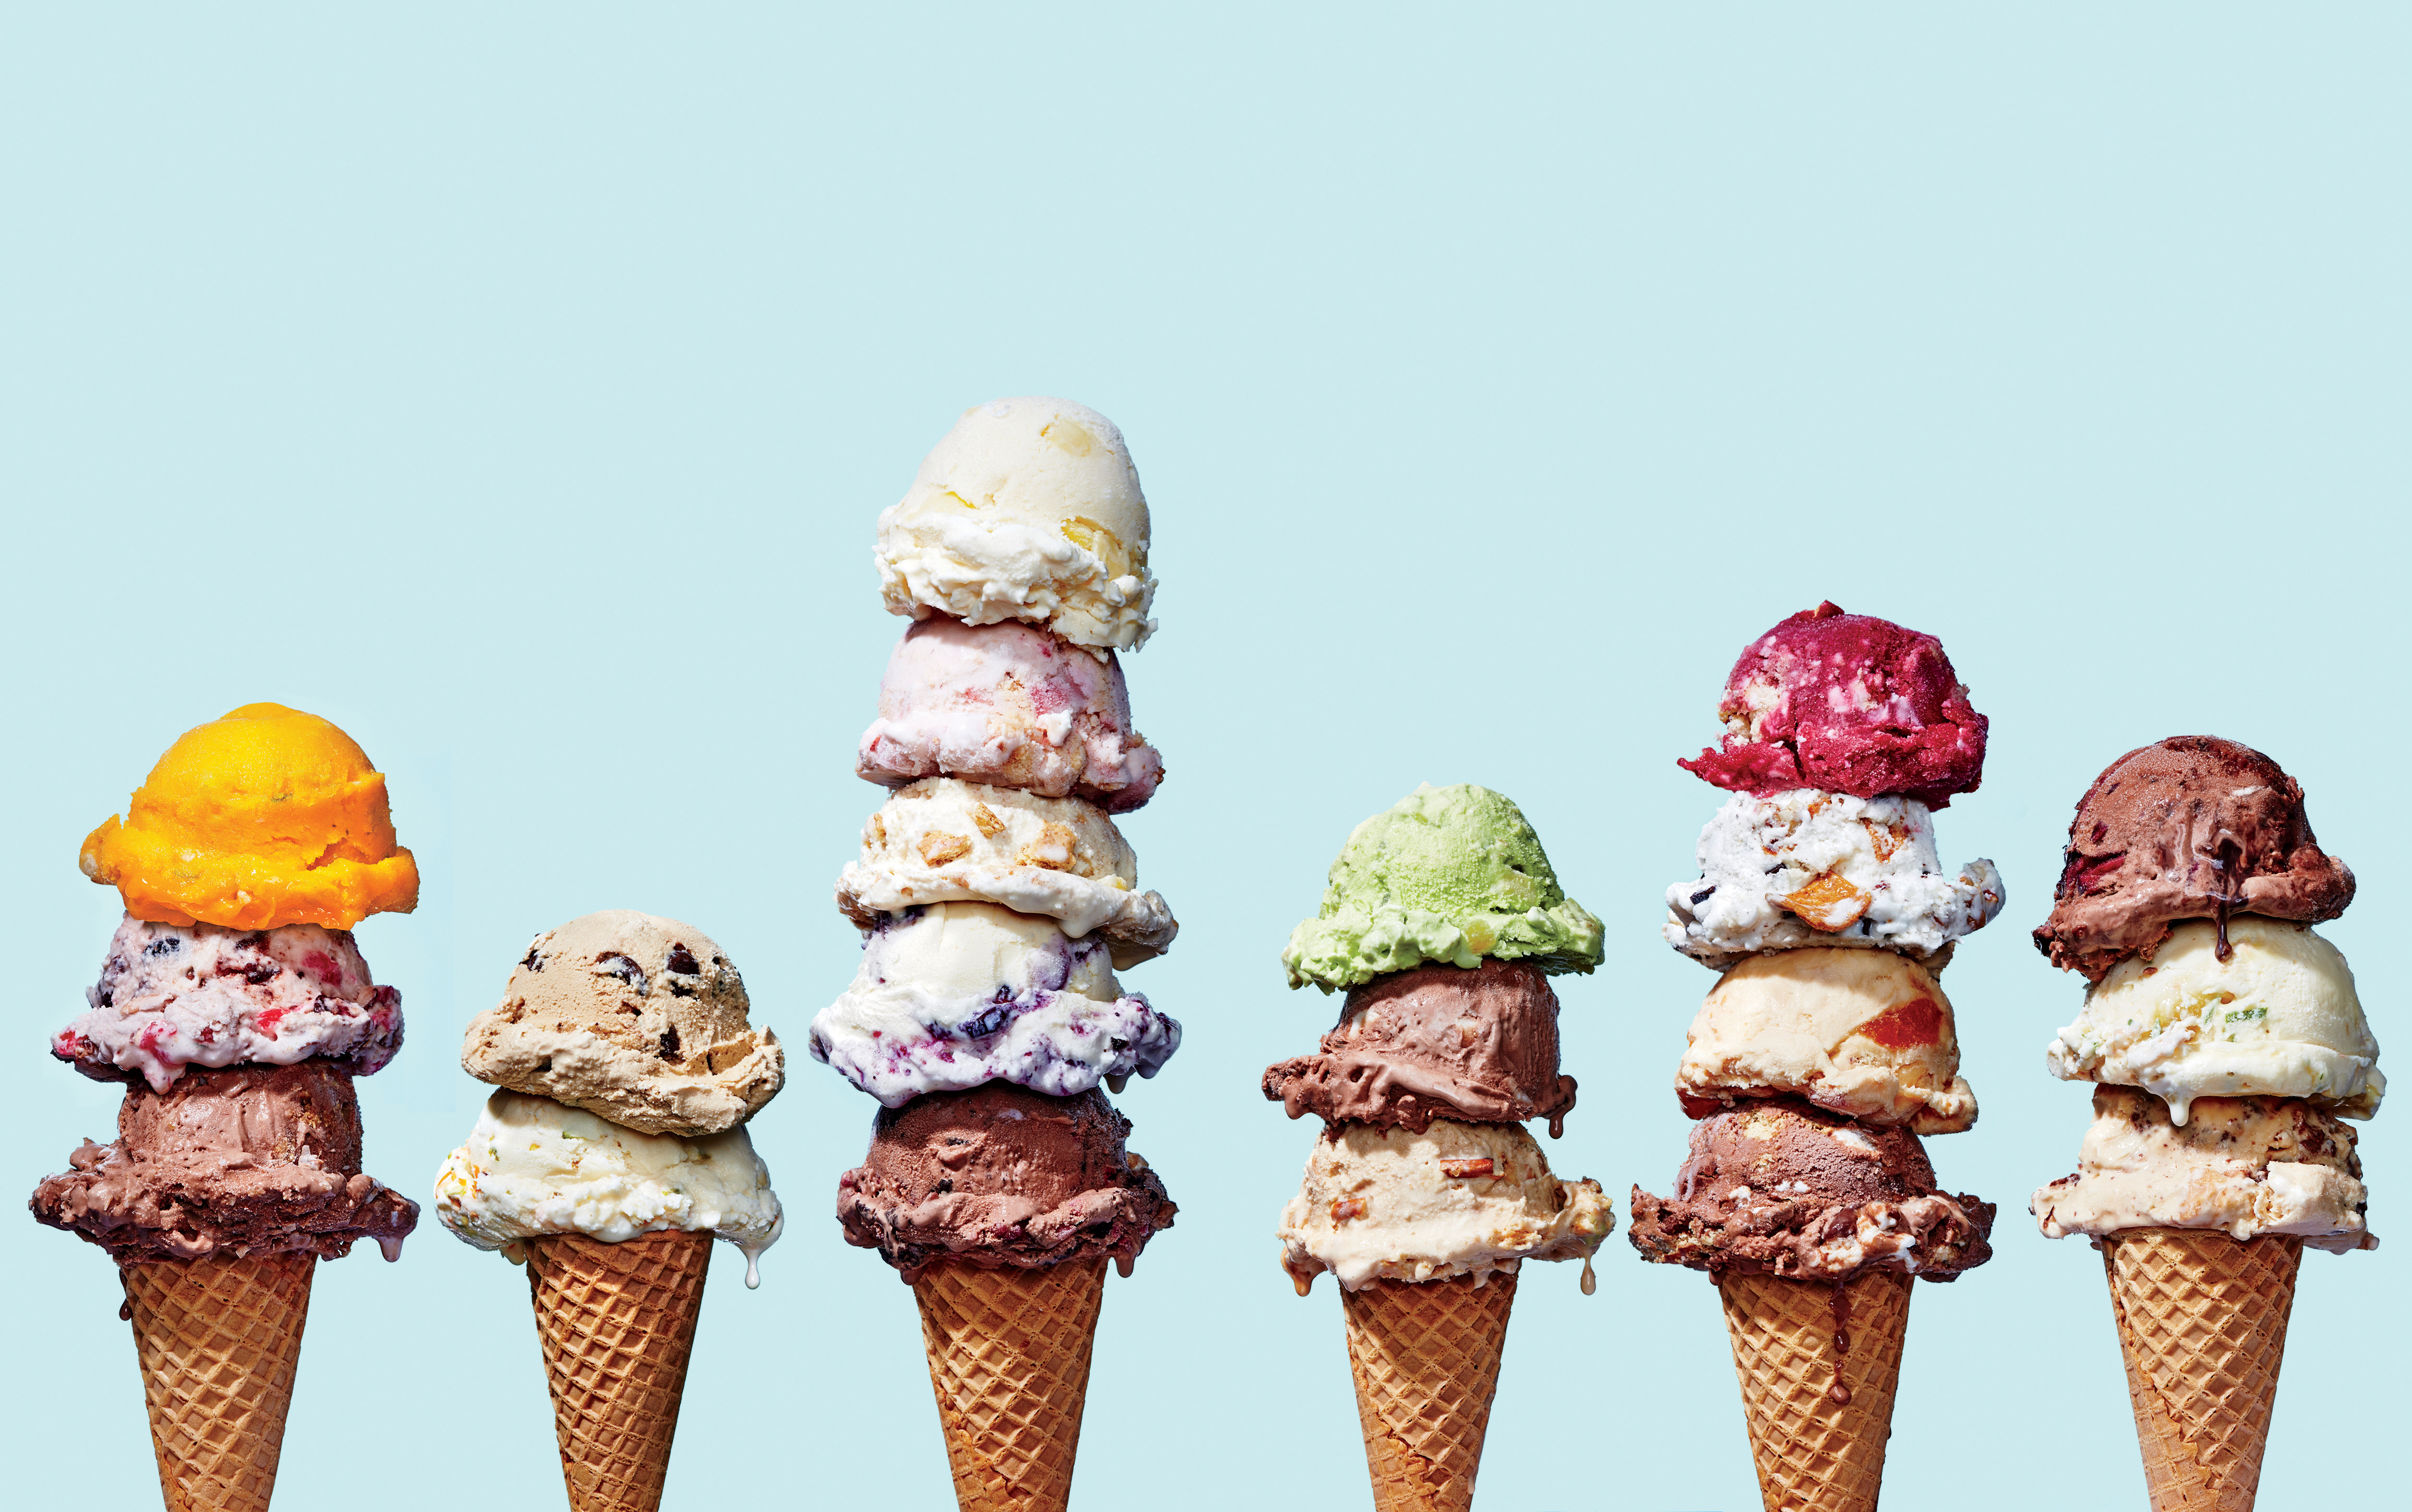 From Horchata to Whiskey, Americans Have a Newfound Taste for Unique Ice Cream Flavors